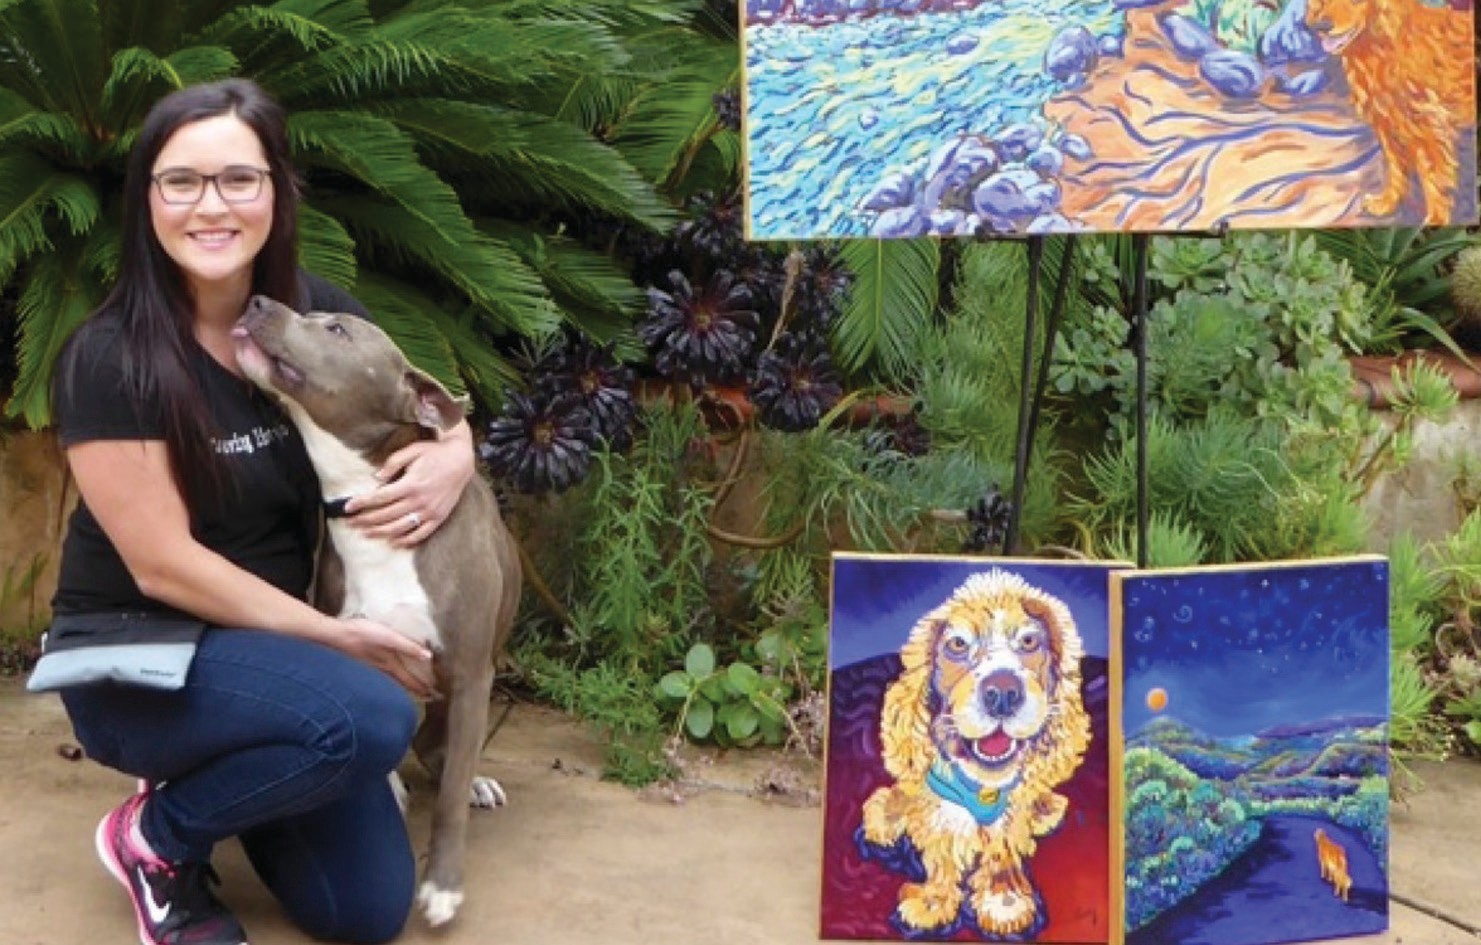 Award winning artist Cathy Carey will hold a fundraiser to benefit Shelter to Solder.